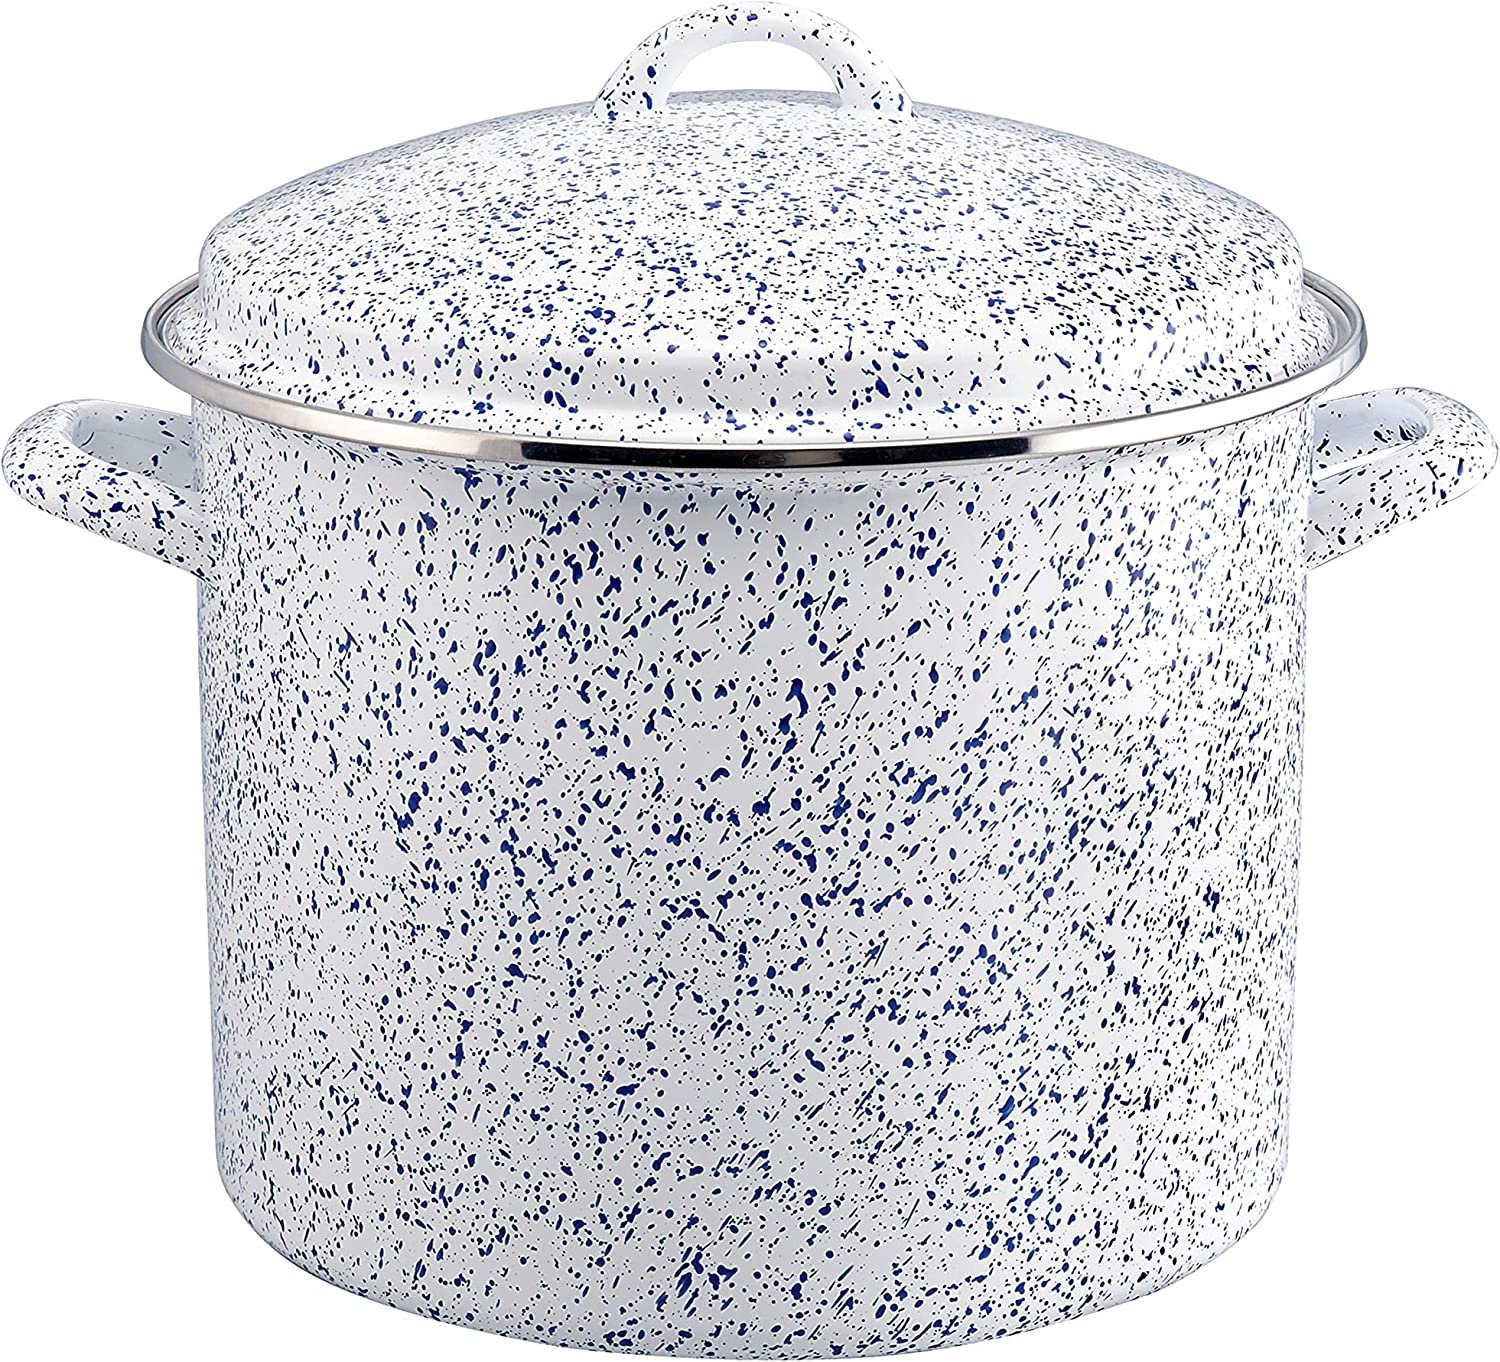 Paula Deen Enamel on Steel Stock Pot/Stockpot with Lid, 12 Quart, Seaspray White Speckle